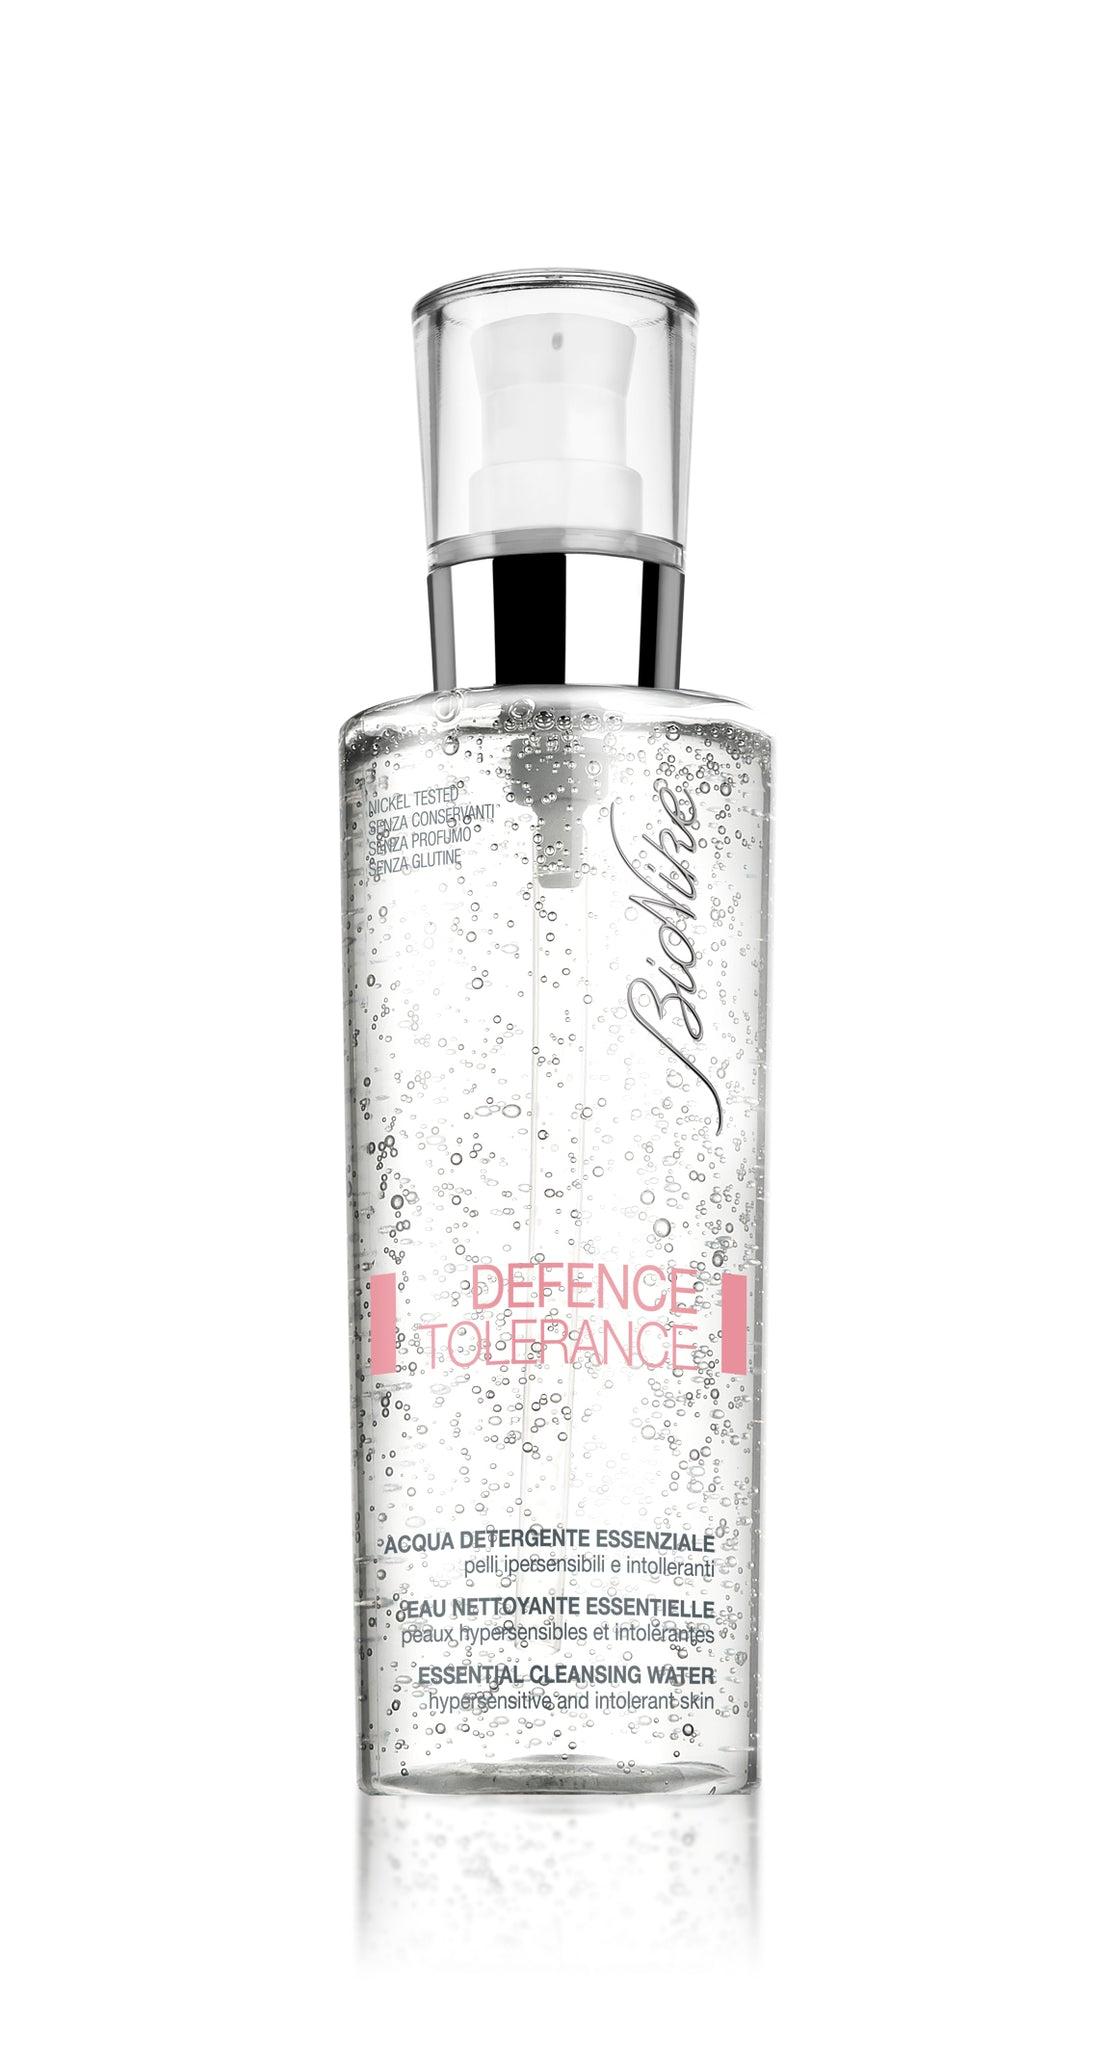 DEFENCE TOLERANCE Essential Cleansing Water